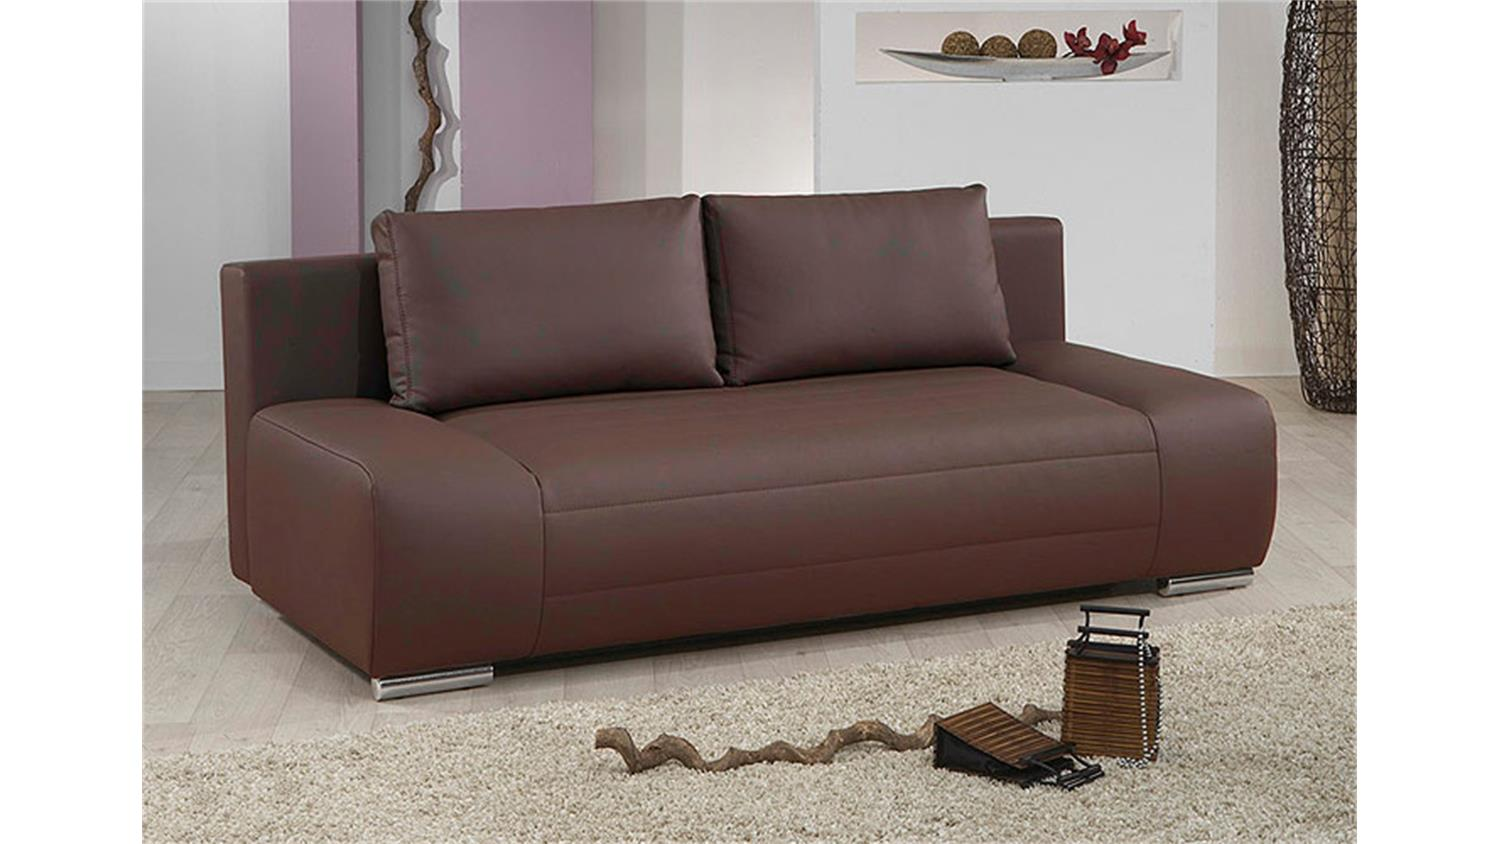 rattan sofa mit bettfunktion rattan sofa mit bettfunktion rattan sofa mit bettfunktion sofa. Black Bedroom Furniture Sets. Home Design Ideas